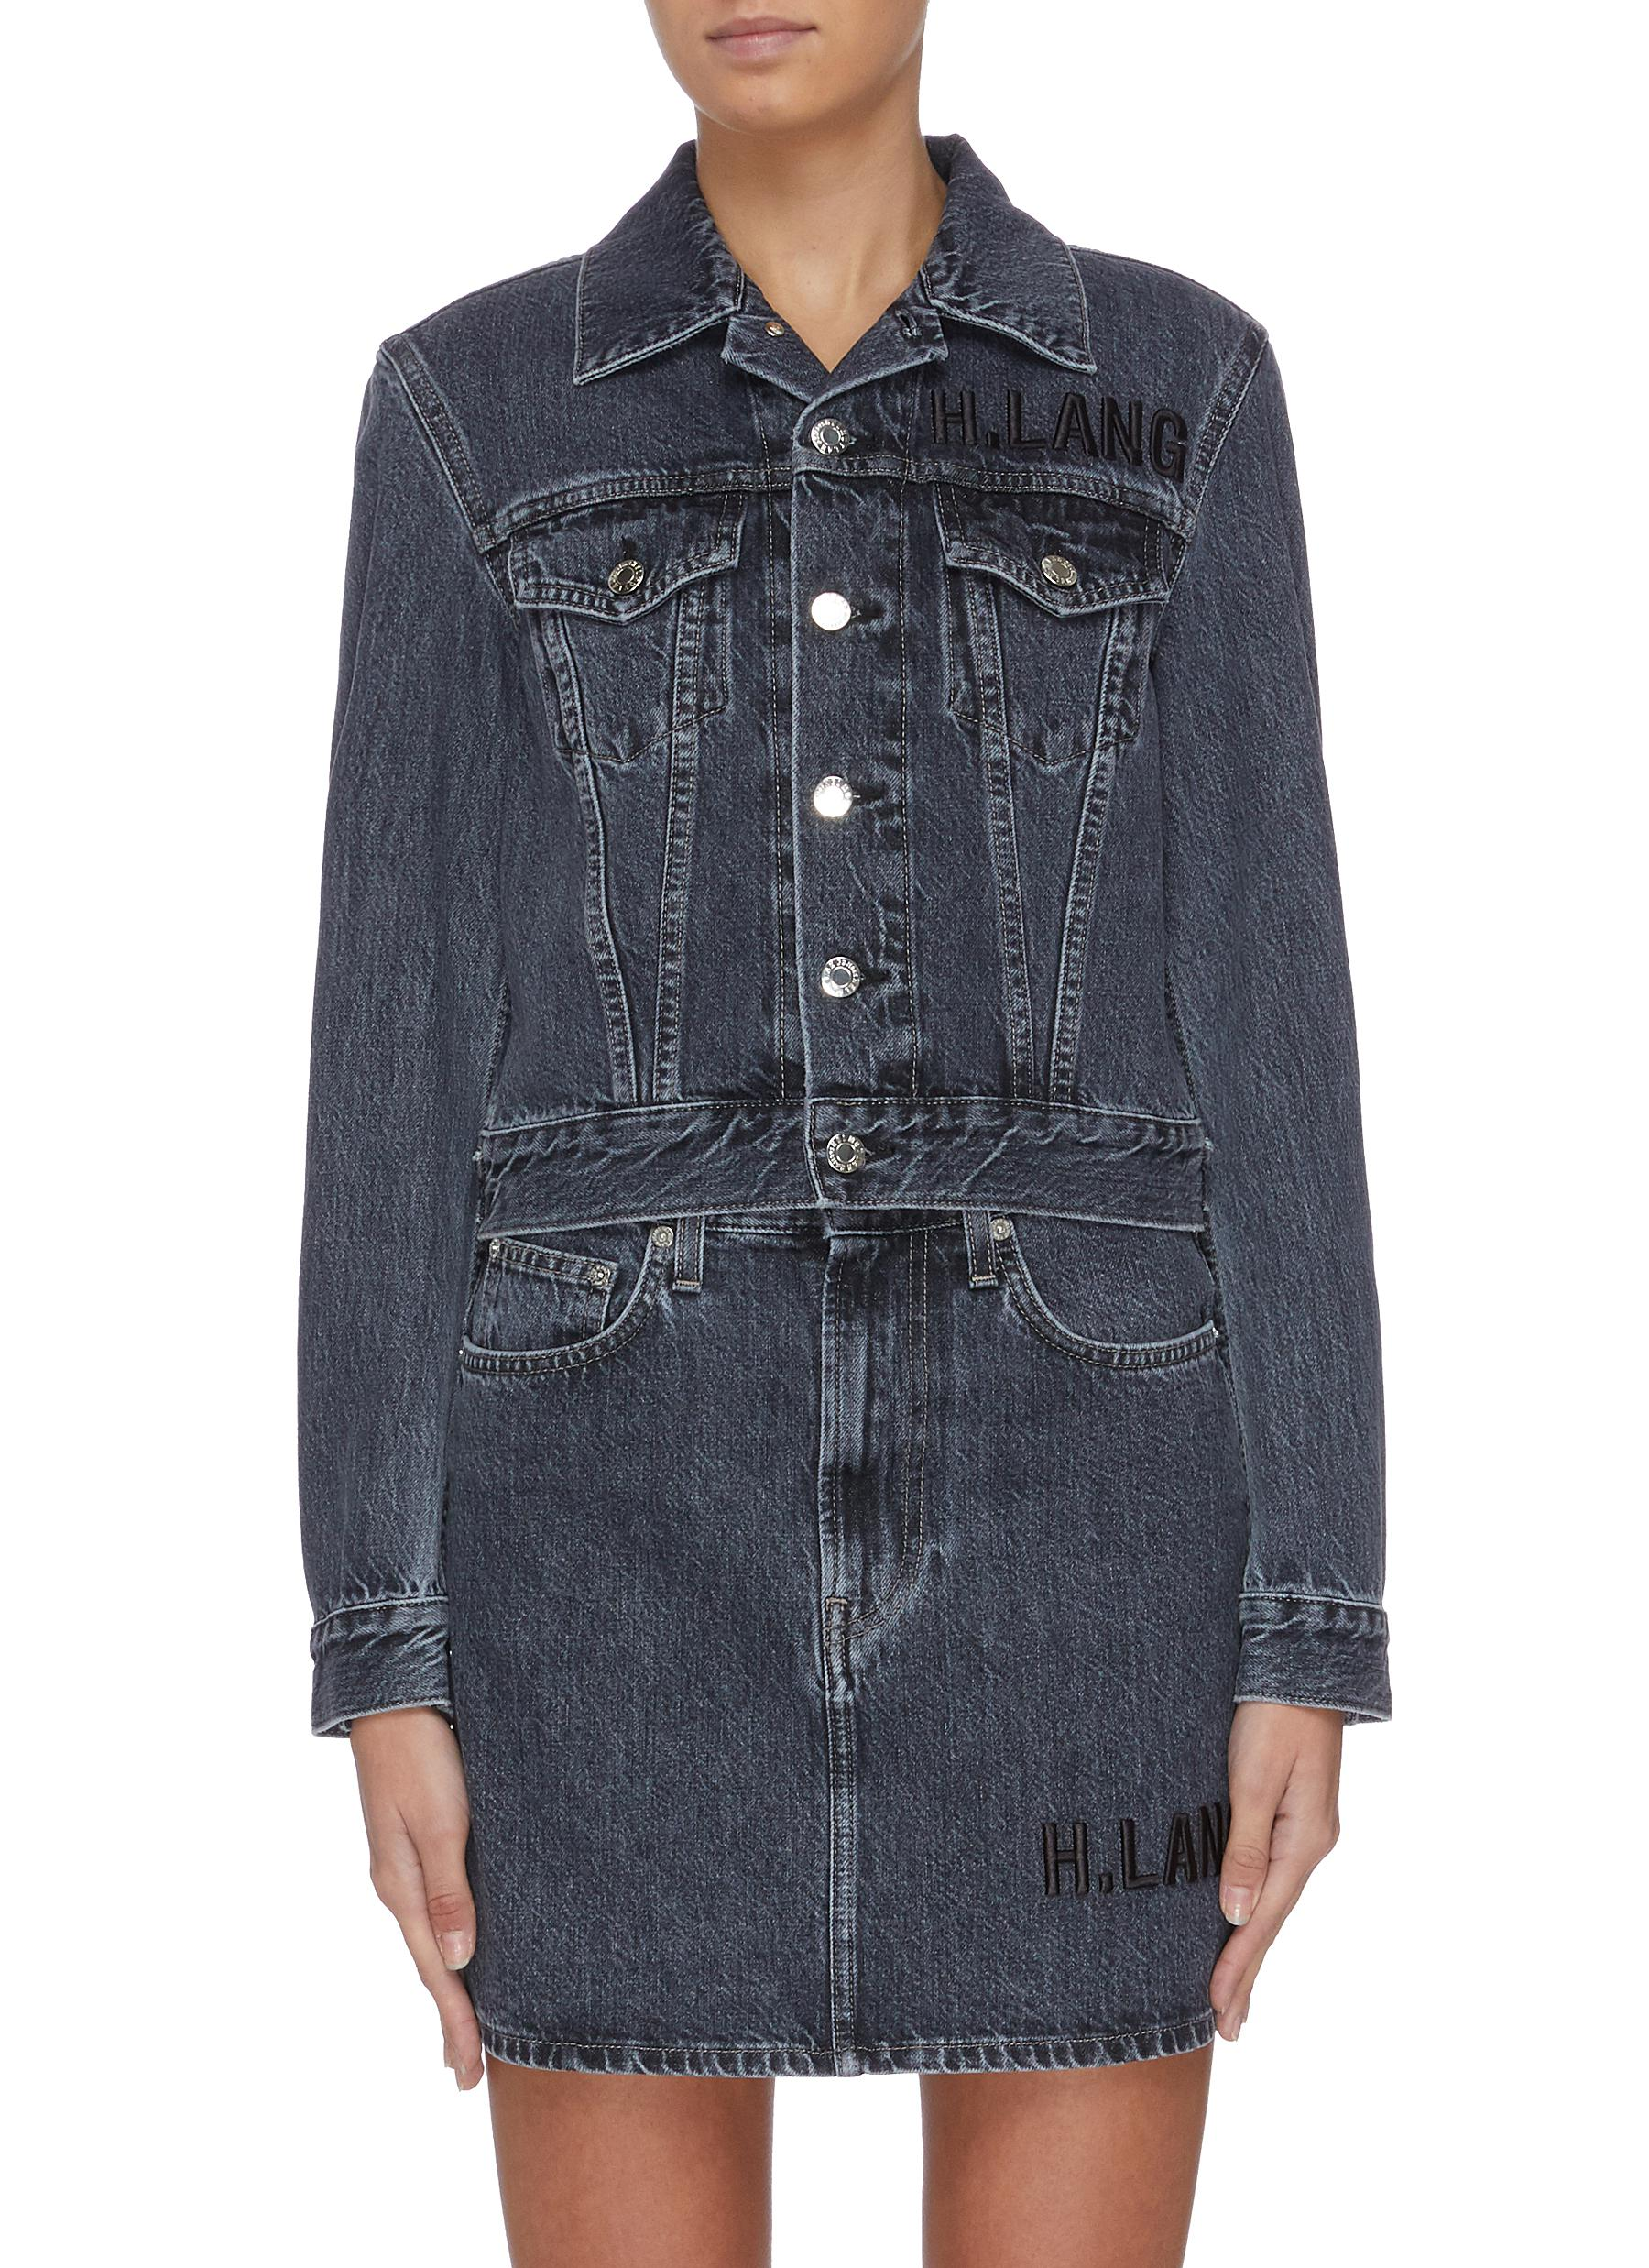 Acce Midnight belted denim trucker jacket by Helmut Lang